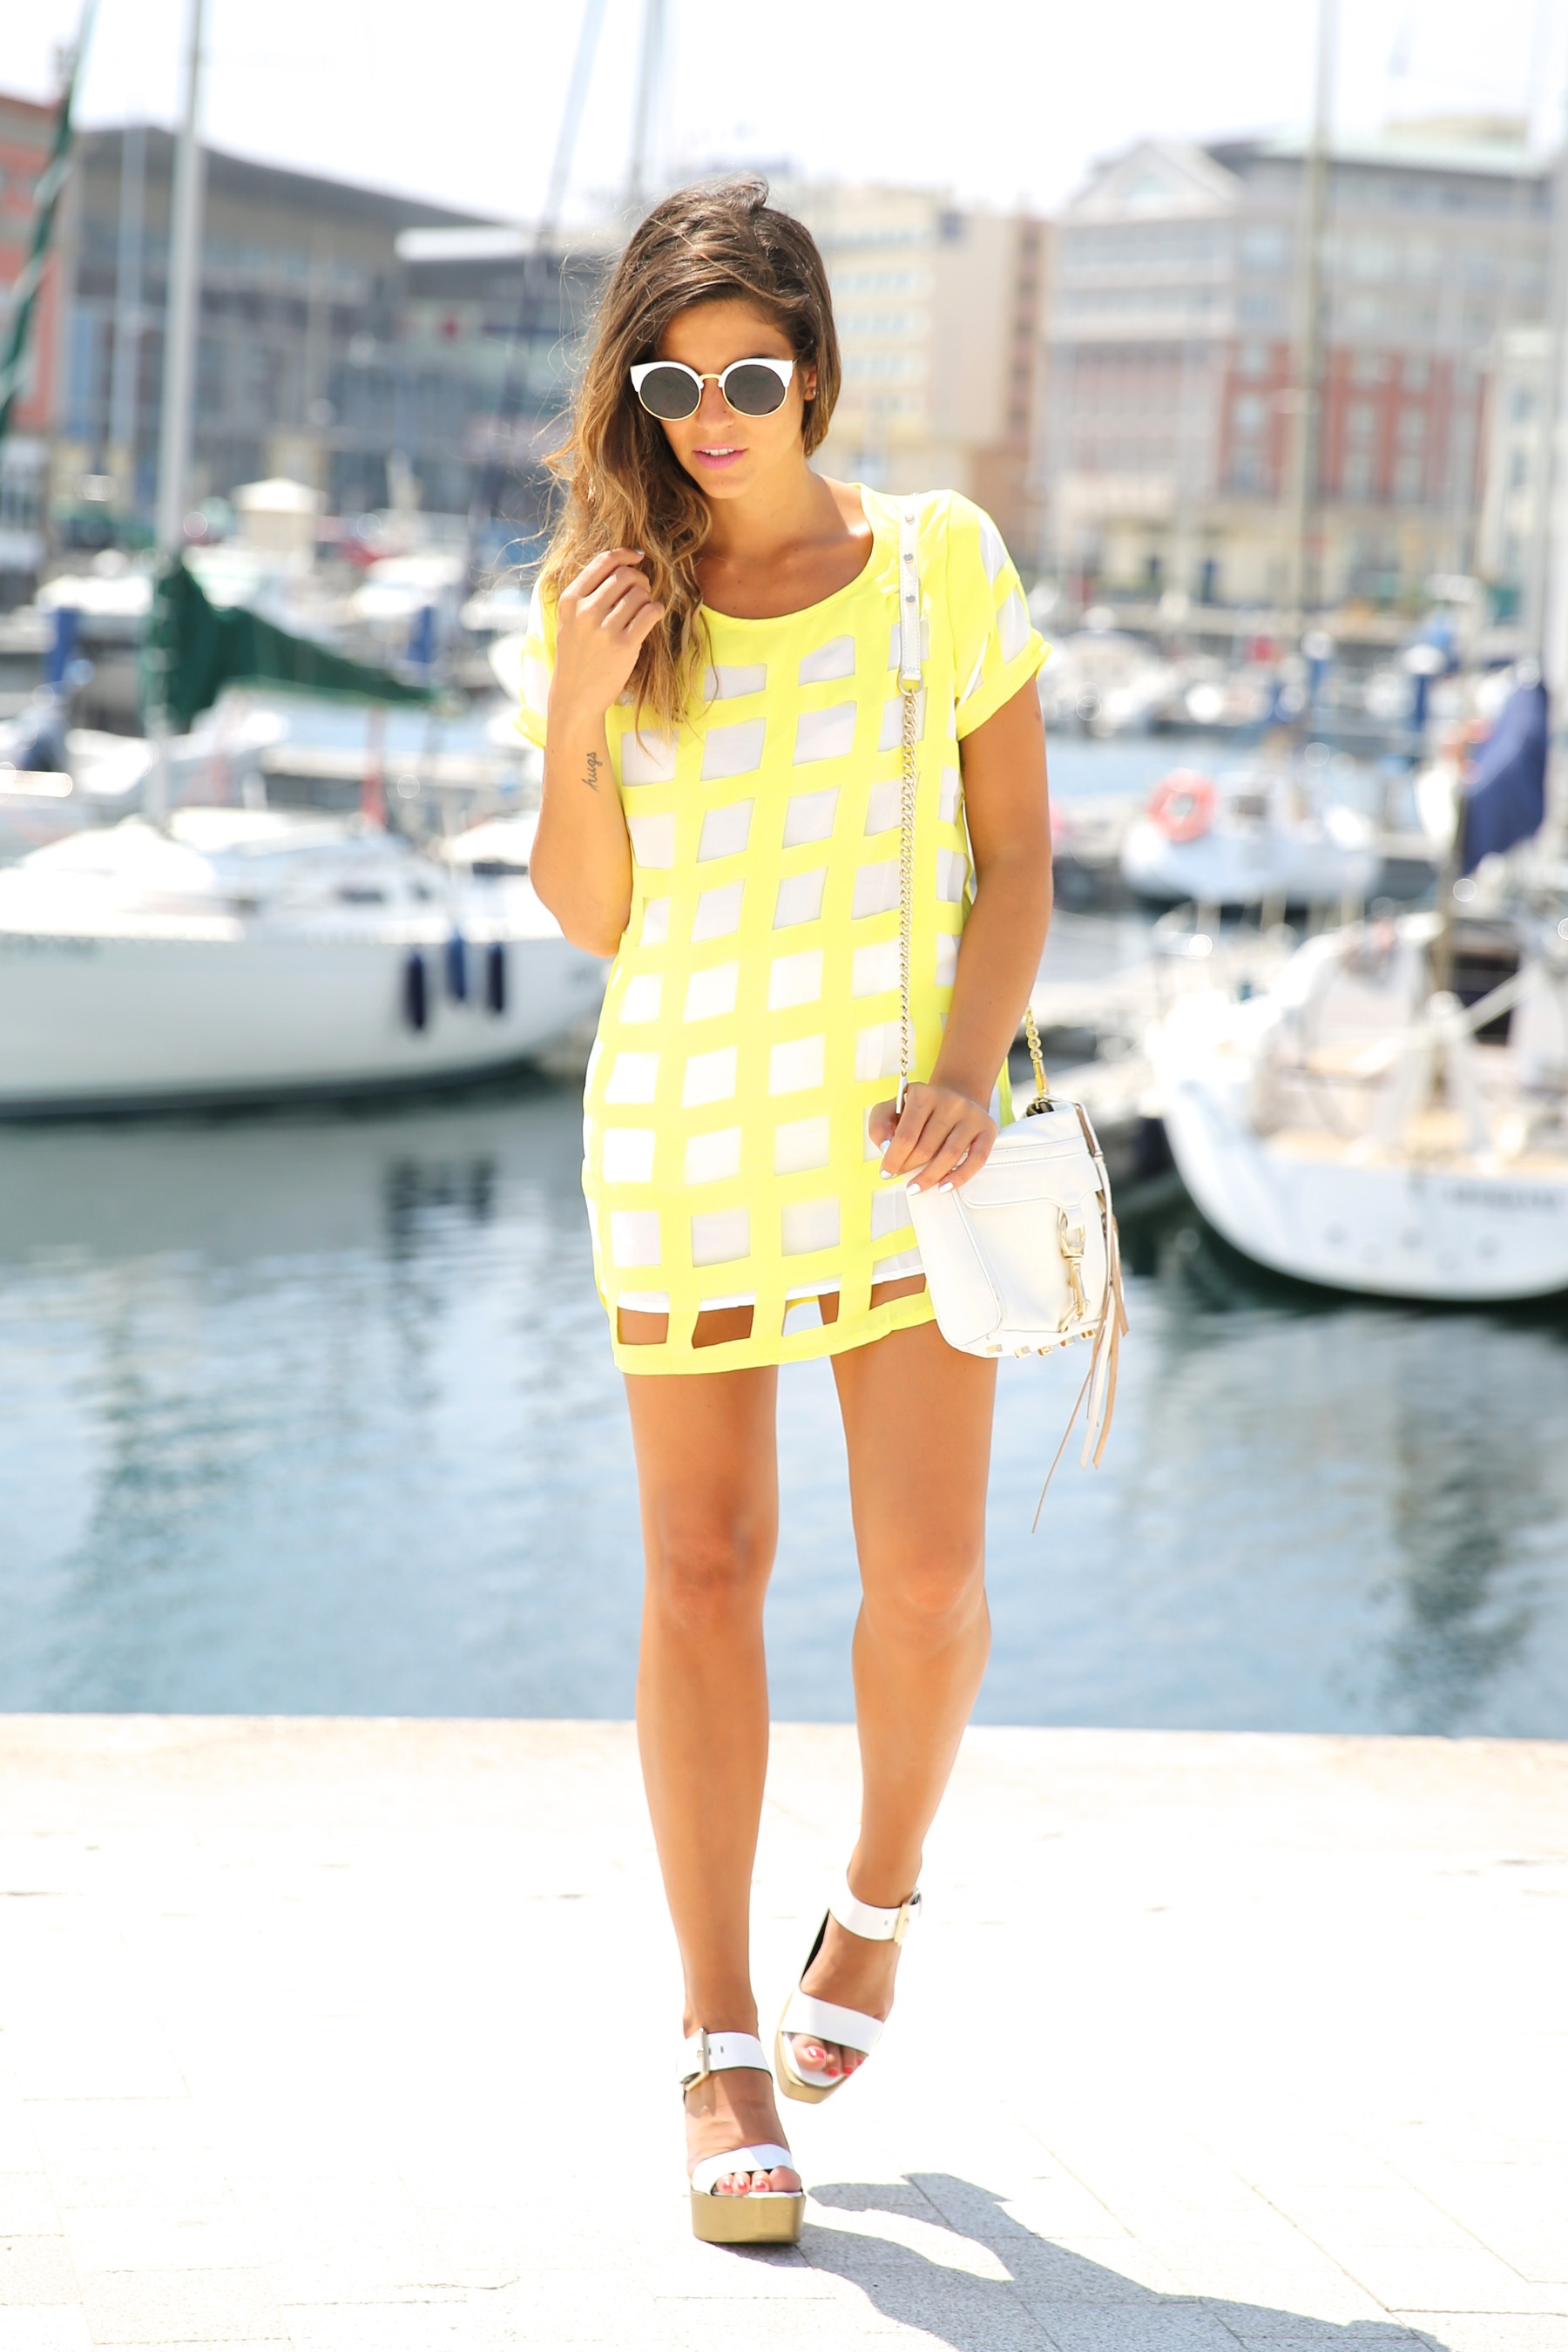 trendy_taste-look-outfit-street_style-ootd-blog-blogger-moda_españa-fashion_spain-coruña-galicia-sandalias_plataforma-platform_sandals-rebecca_minkoff-yellow-amarillo-vestido-dress-plaid-cuadros-9